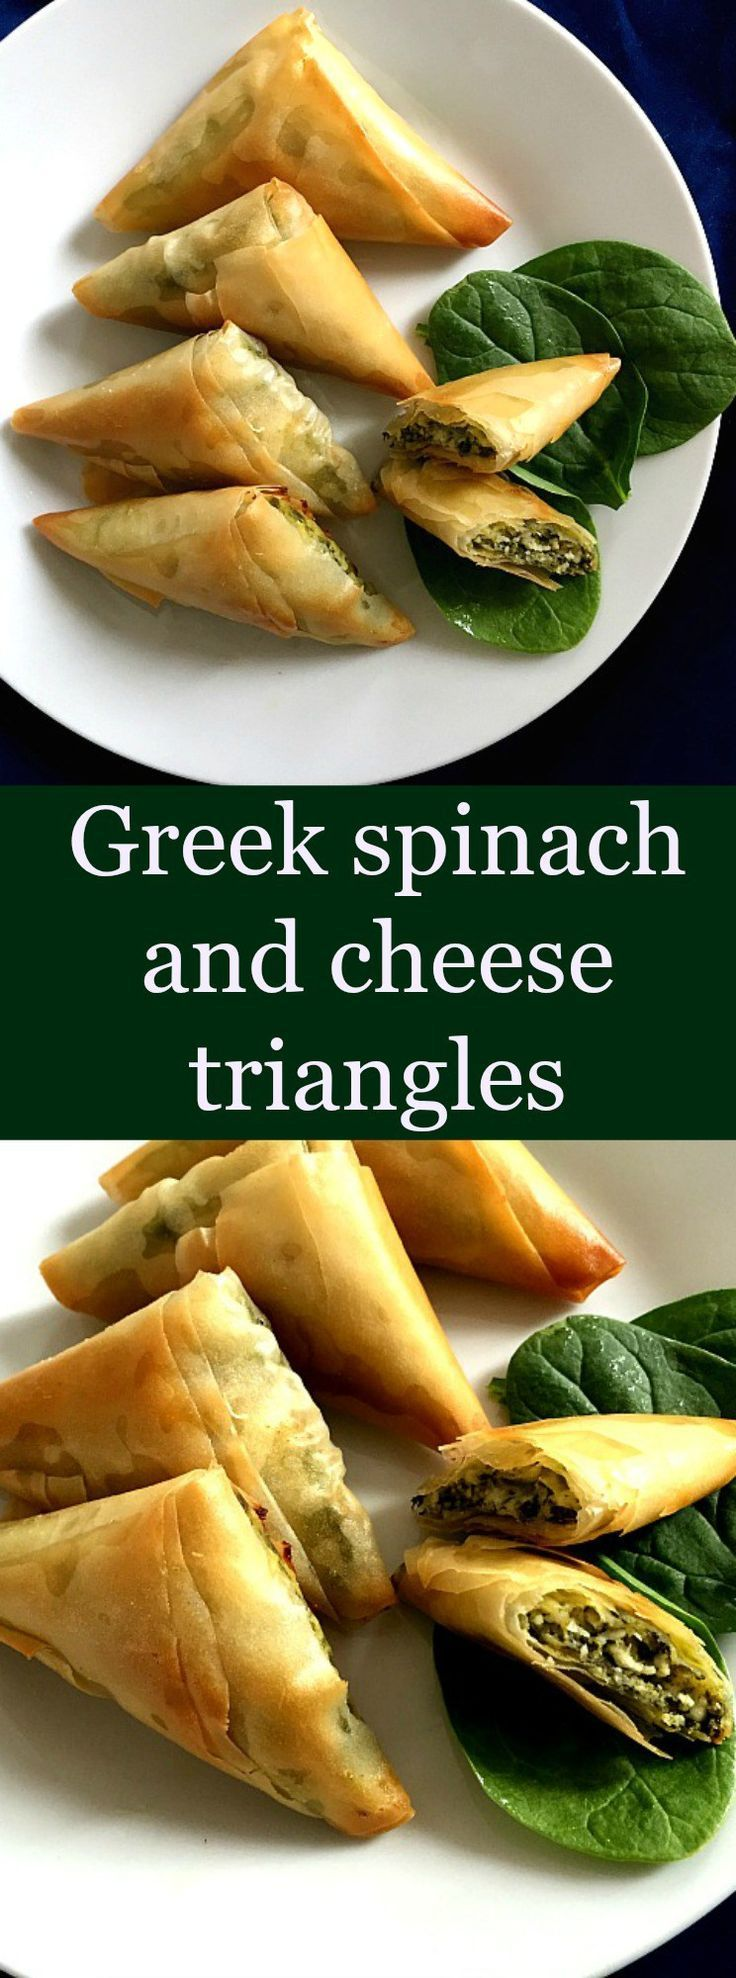 Greek spinach and cheese triangles or spanakopita a popular recipe greek spinach and cheese triangles or spanakopita a popular recipe all over the world forumfinder Choice Image